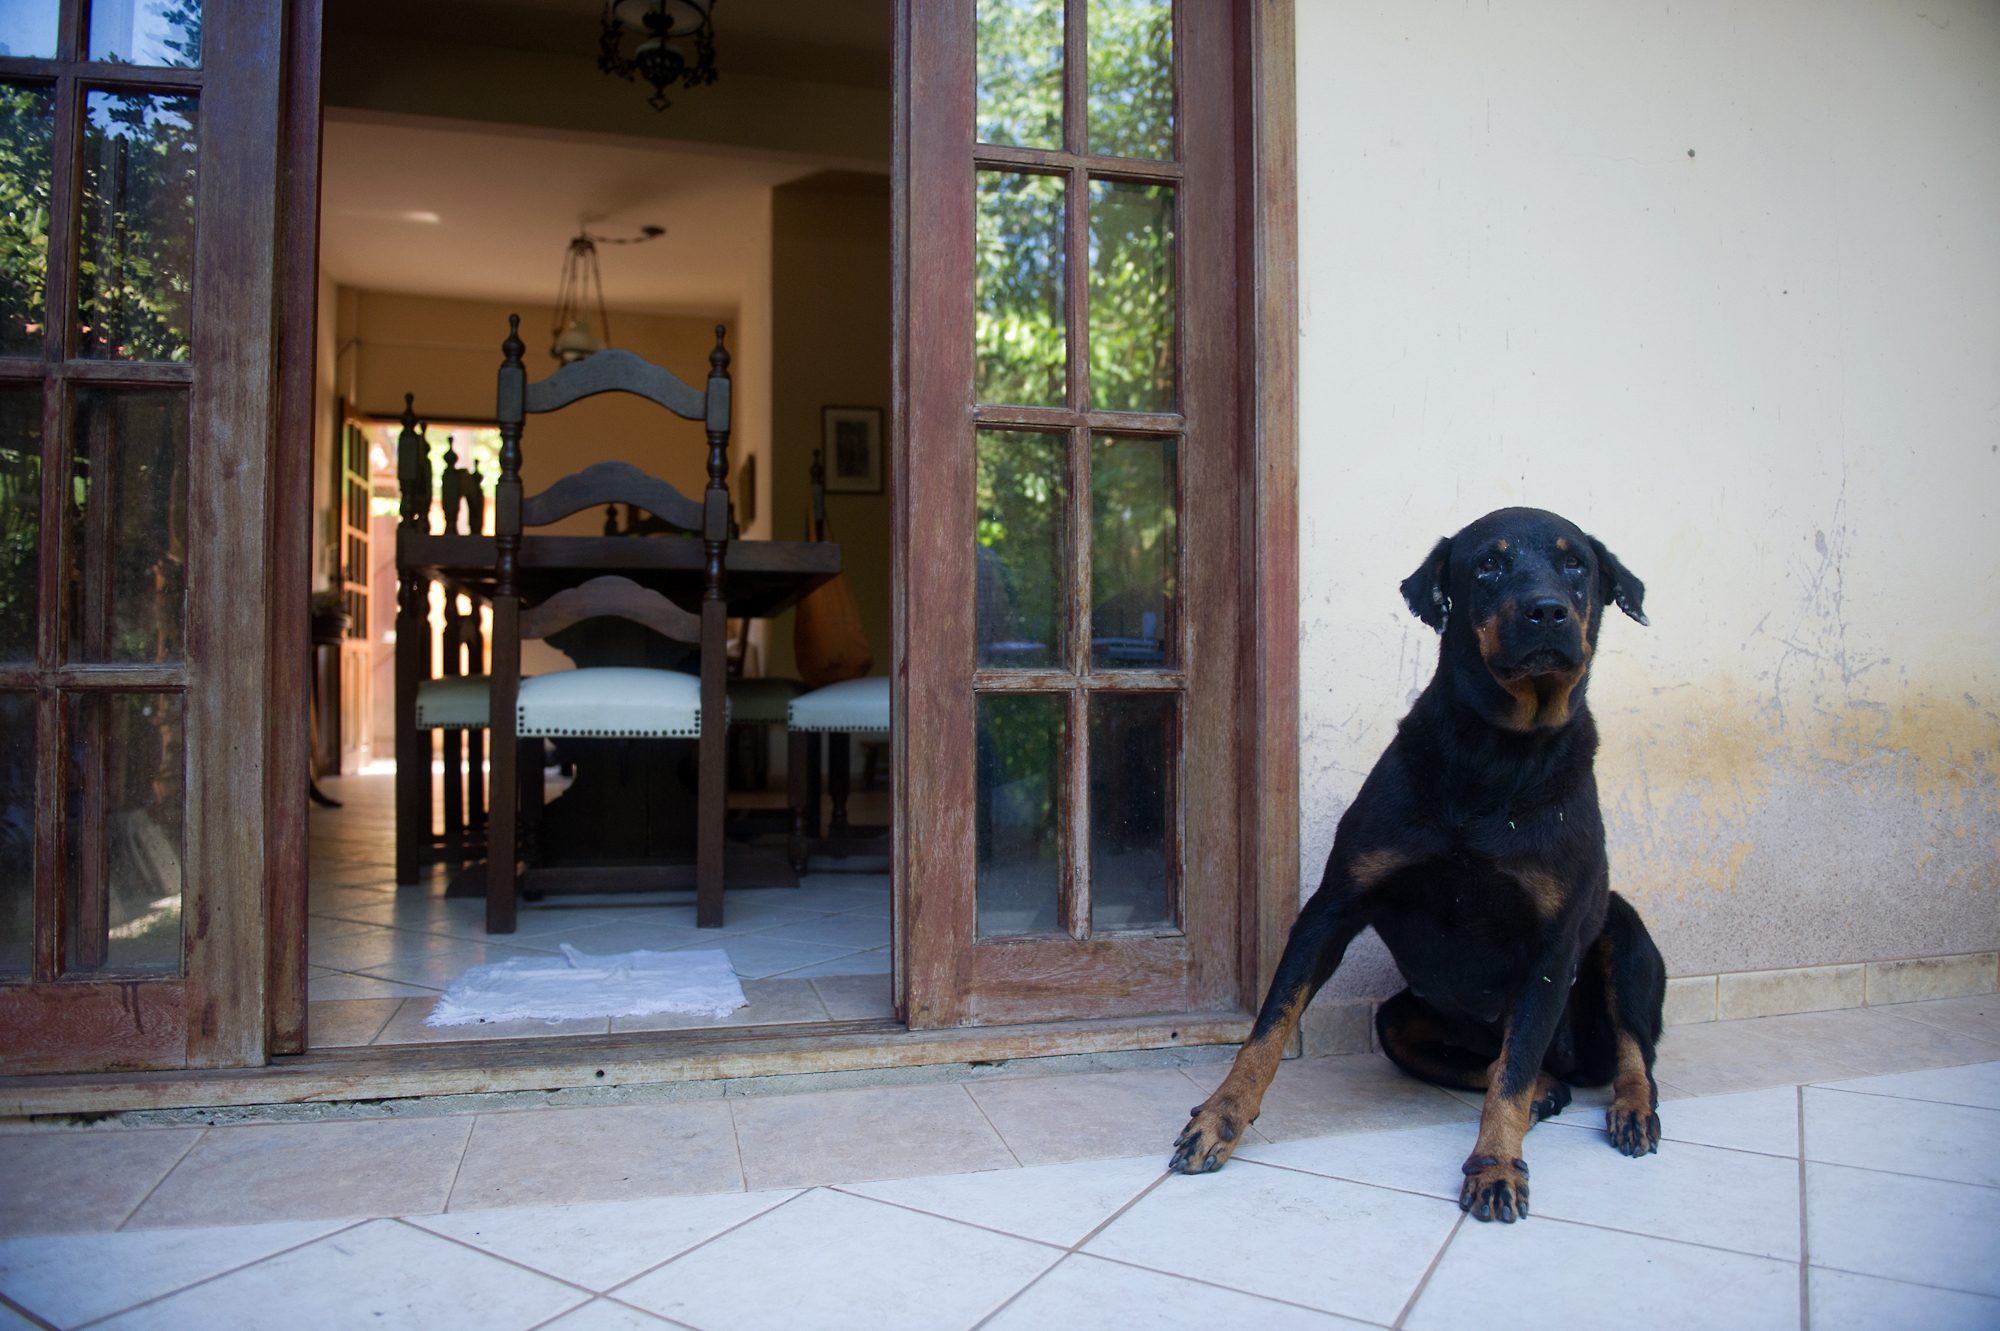 Brito's dog relaxes on the back porch of her home in Vila Autodromo.